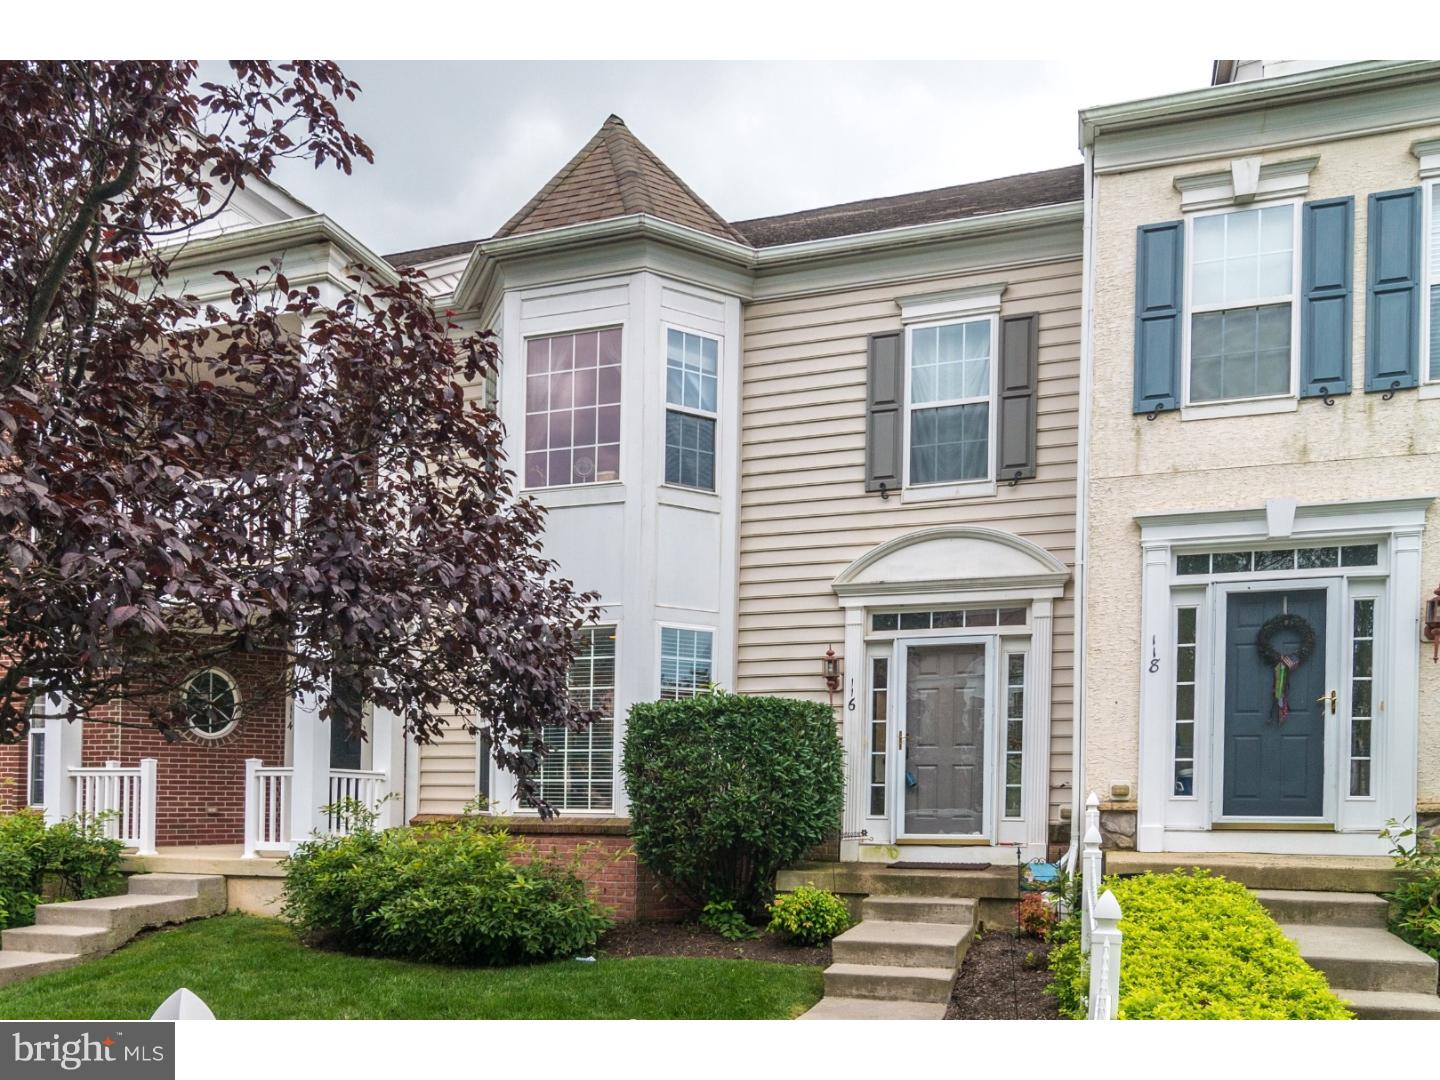 116 PIPERS INN DRIVE, FOUNTAINVILLE, PA 18923